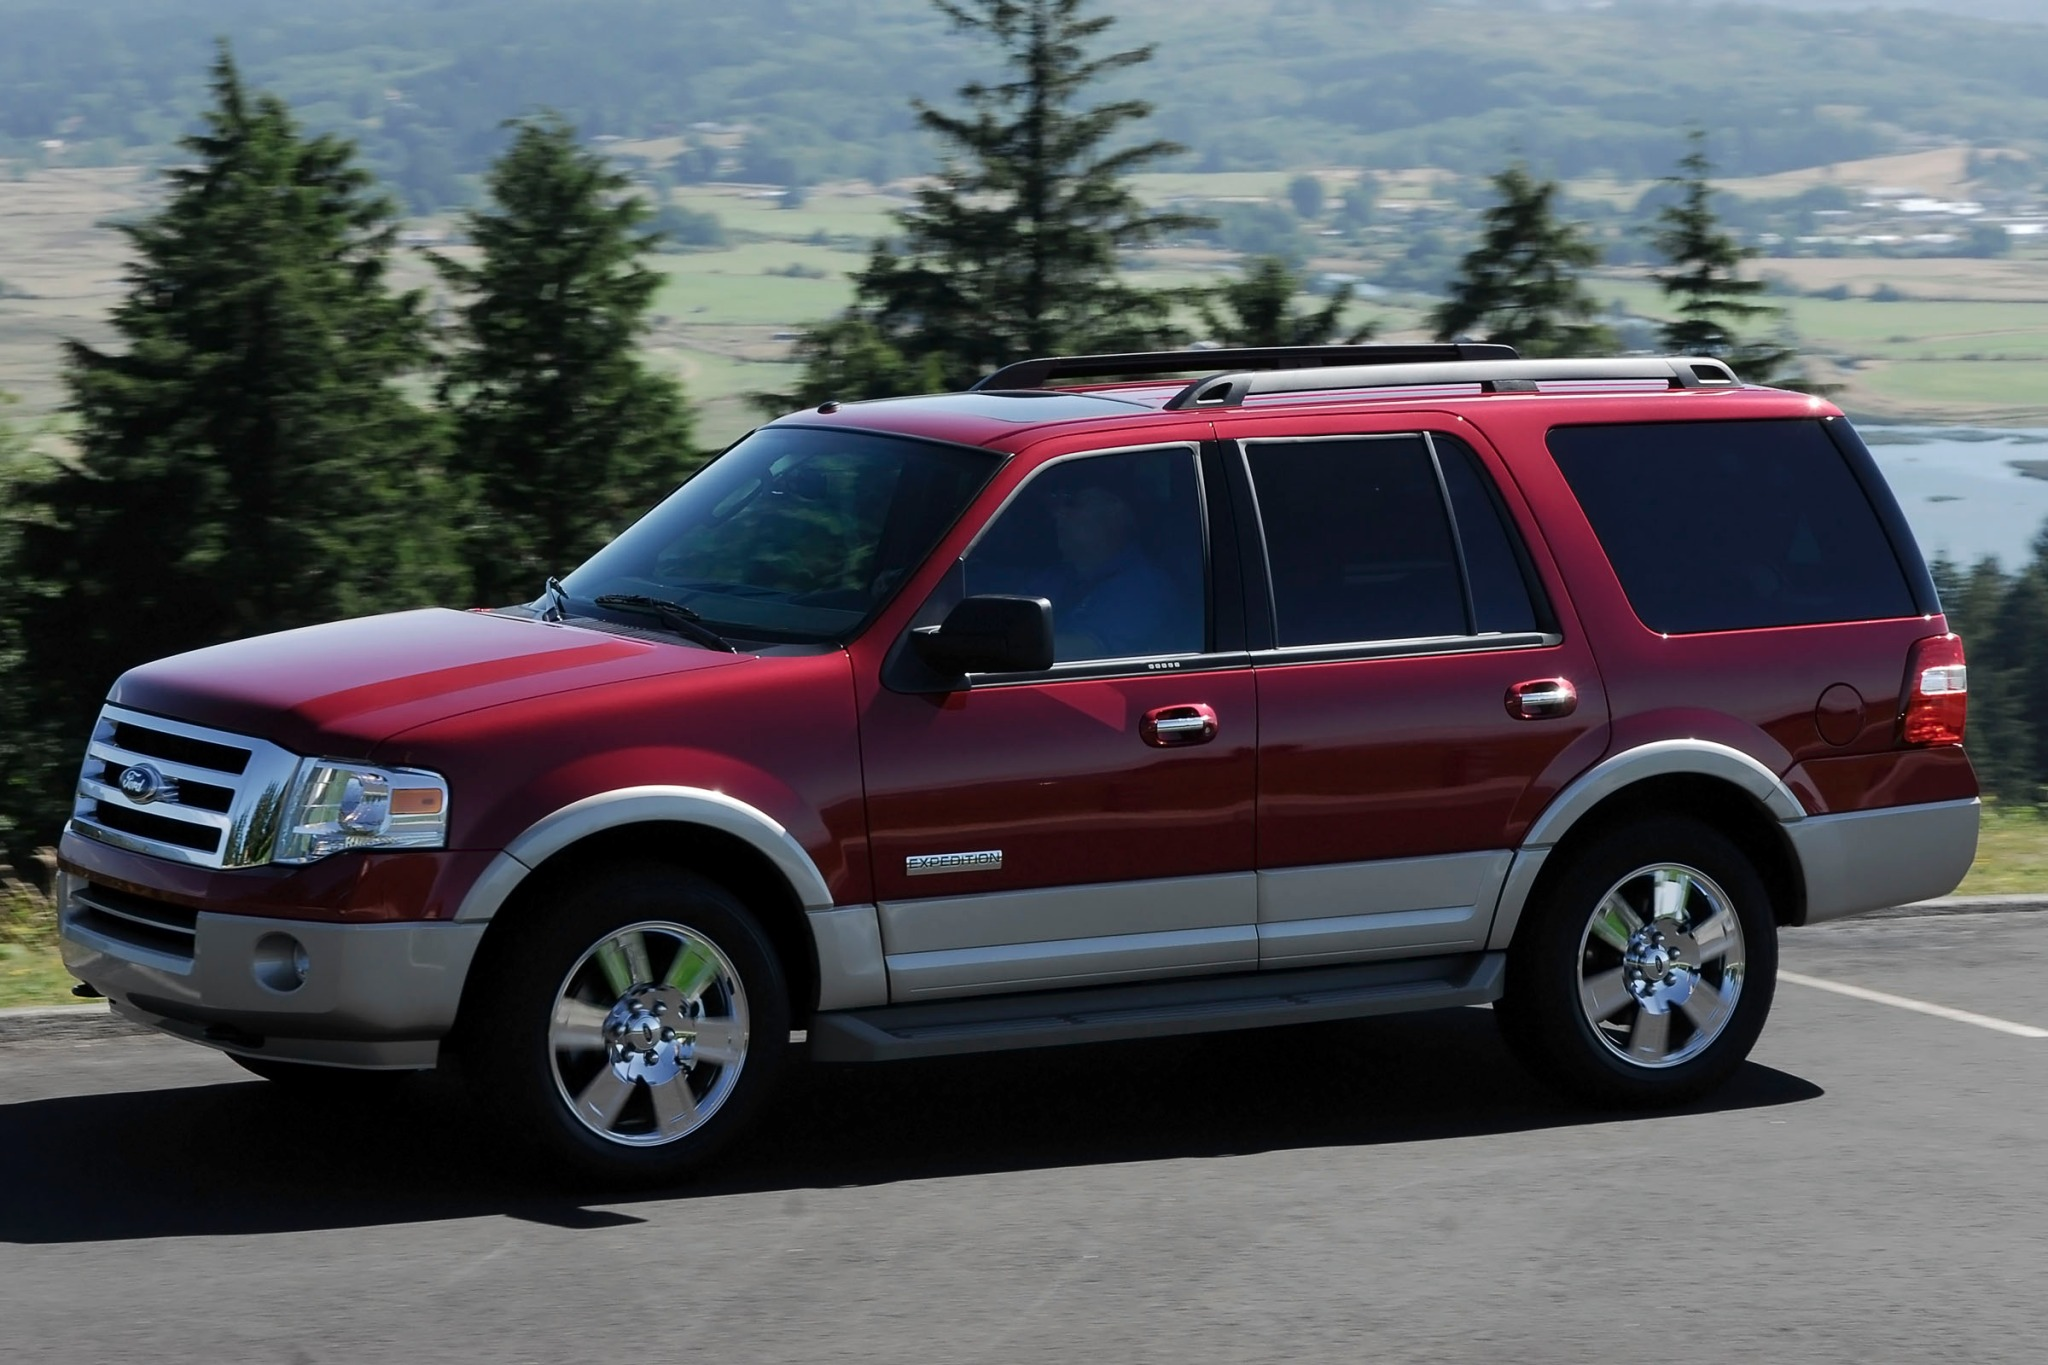 2013 Ford Expedition XLT  exterior #9